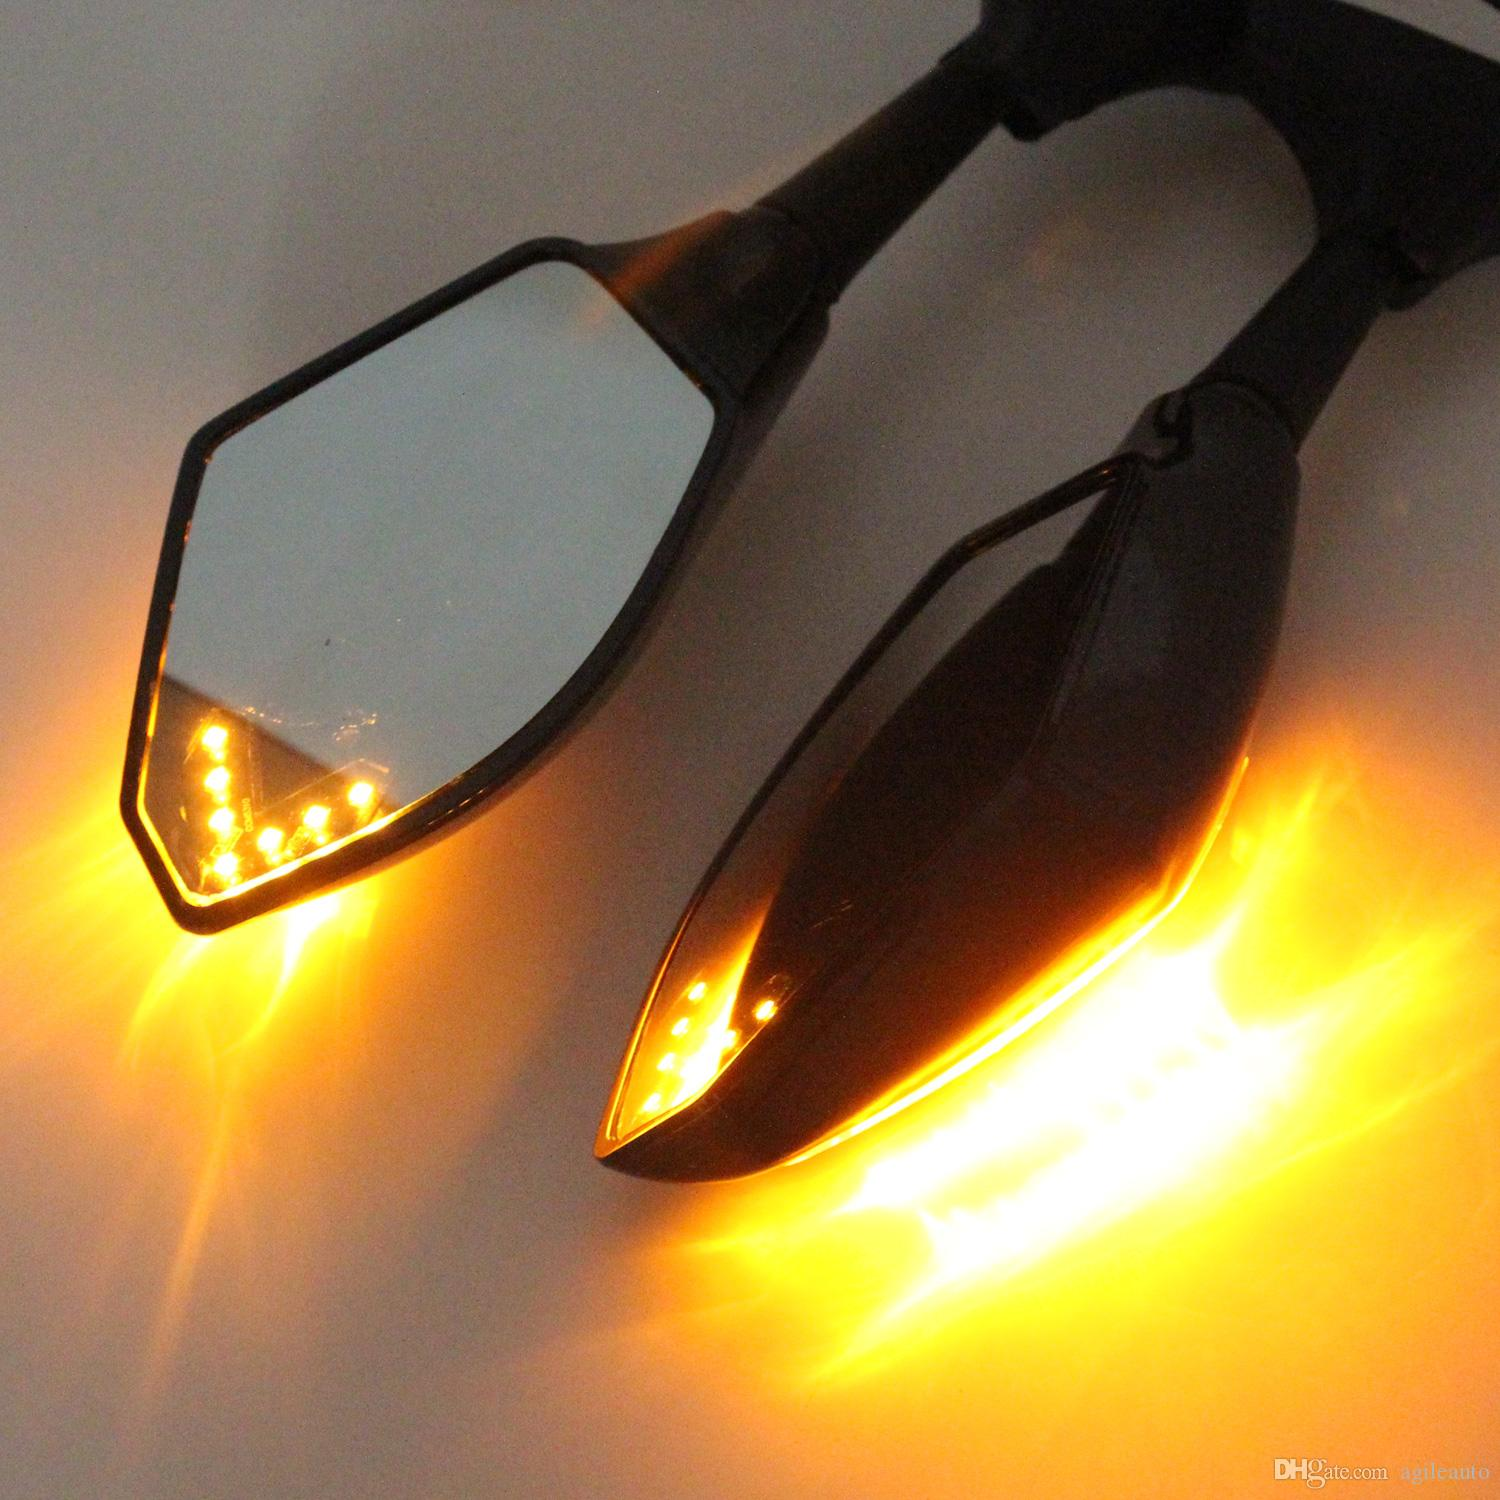 Rear View Mirror for Honda Kawasaki Yamaha Suzuki Ducati W// LED Turn Signal Lmap